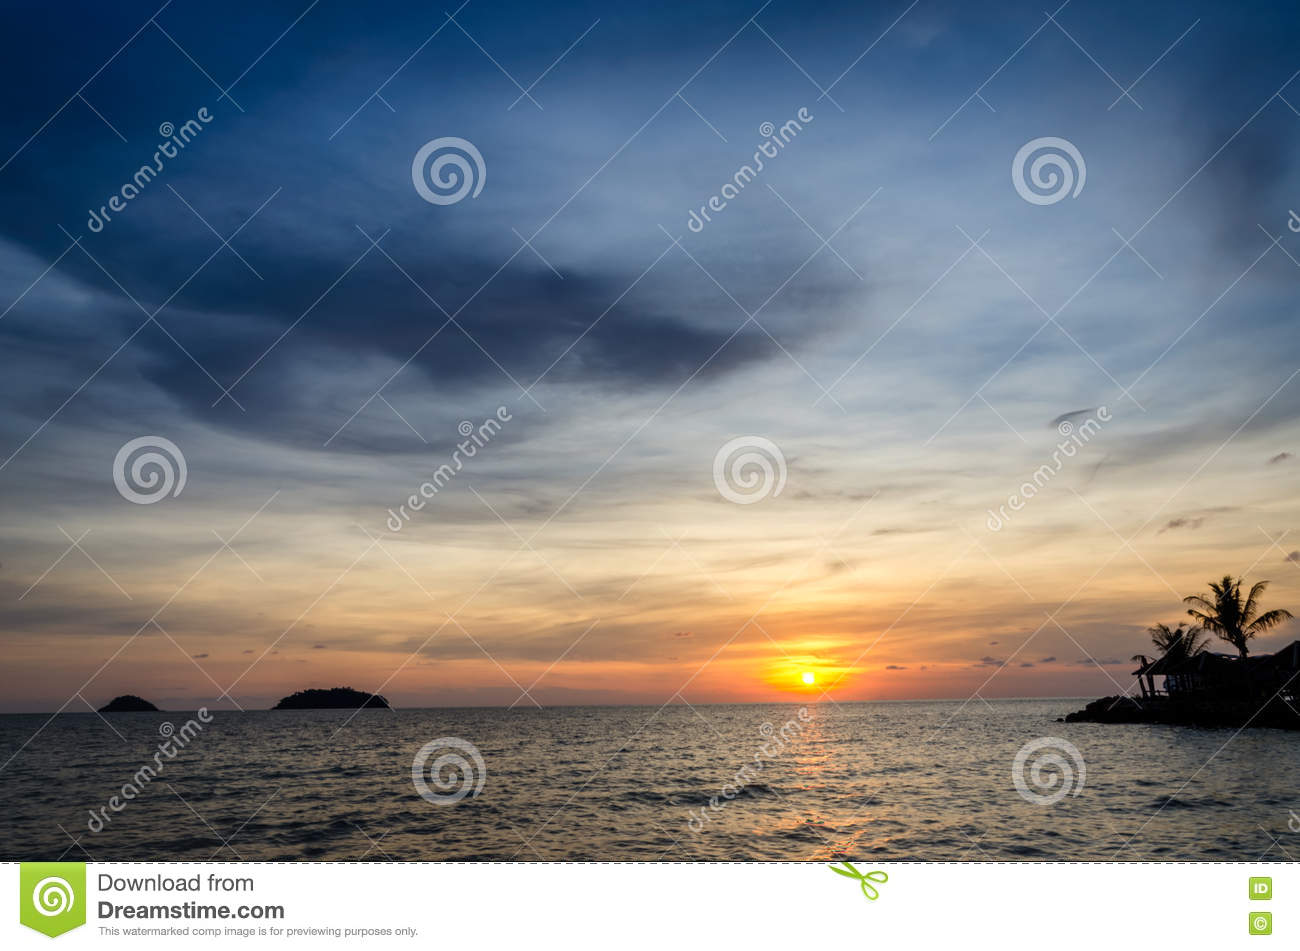 Sunset sky over ocean